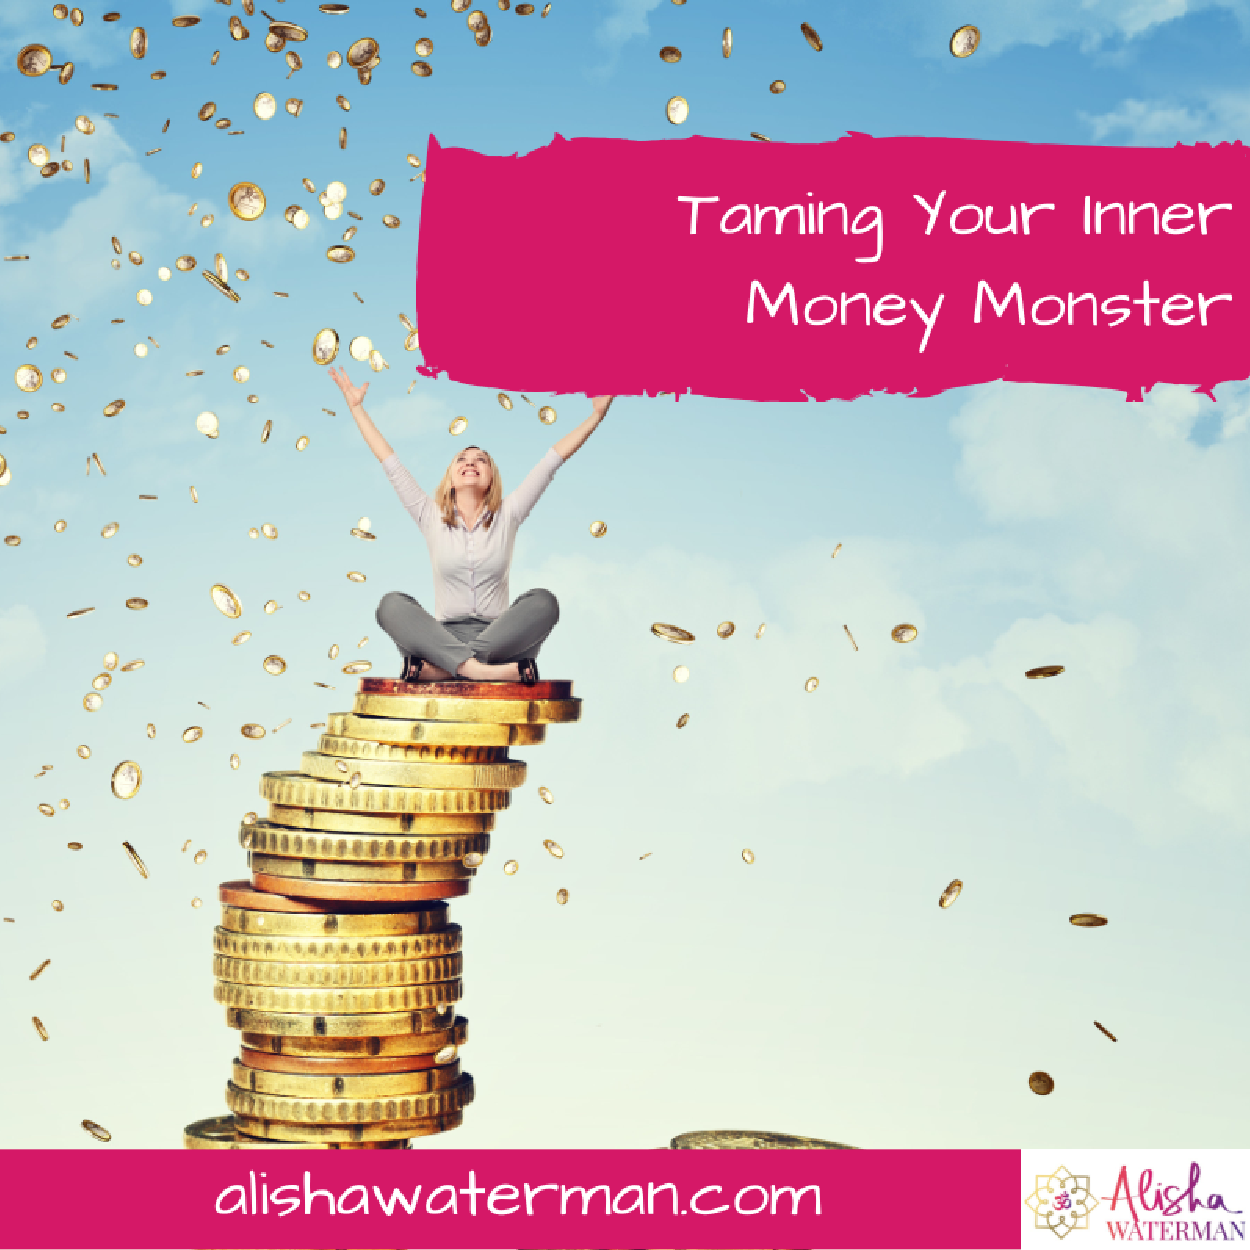 Taming your inner money monster